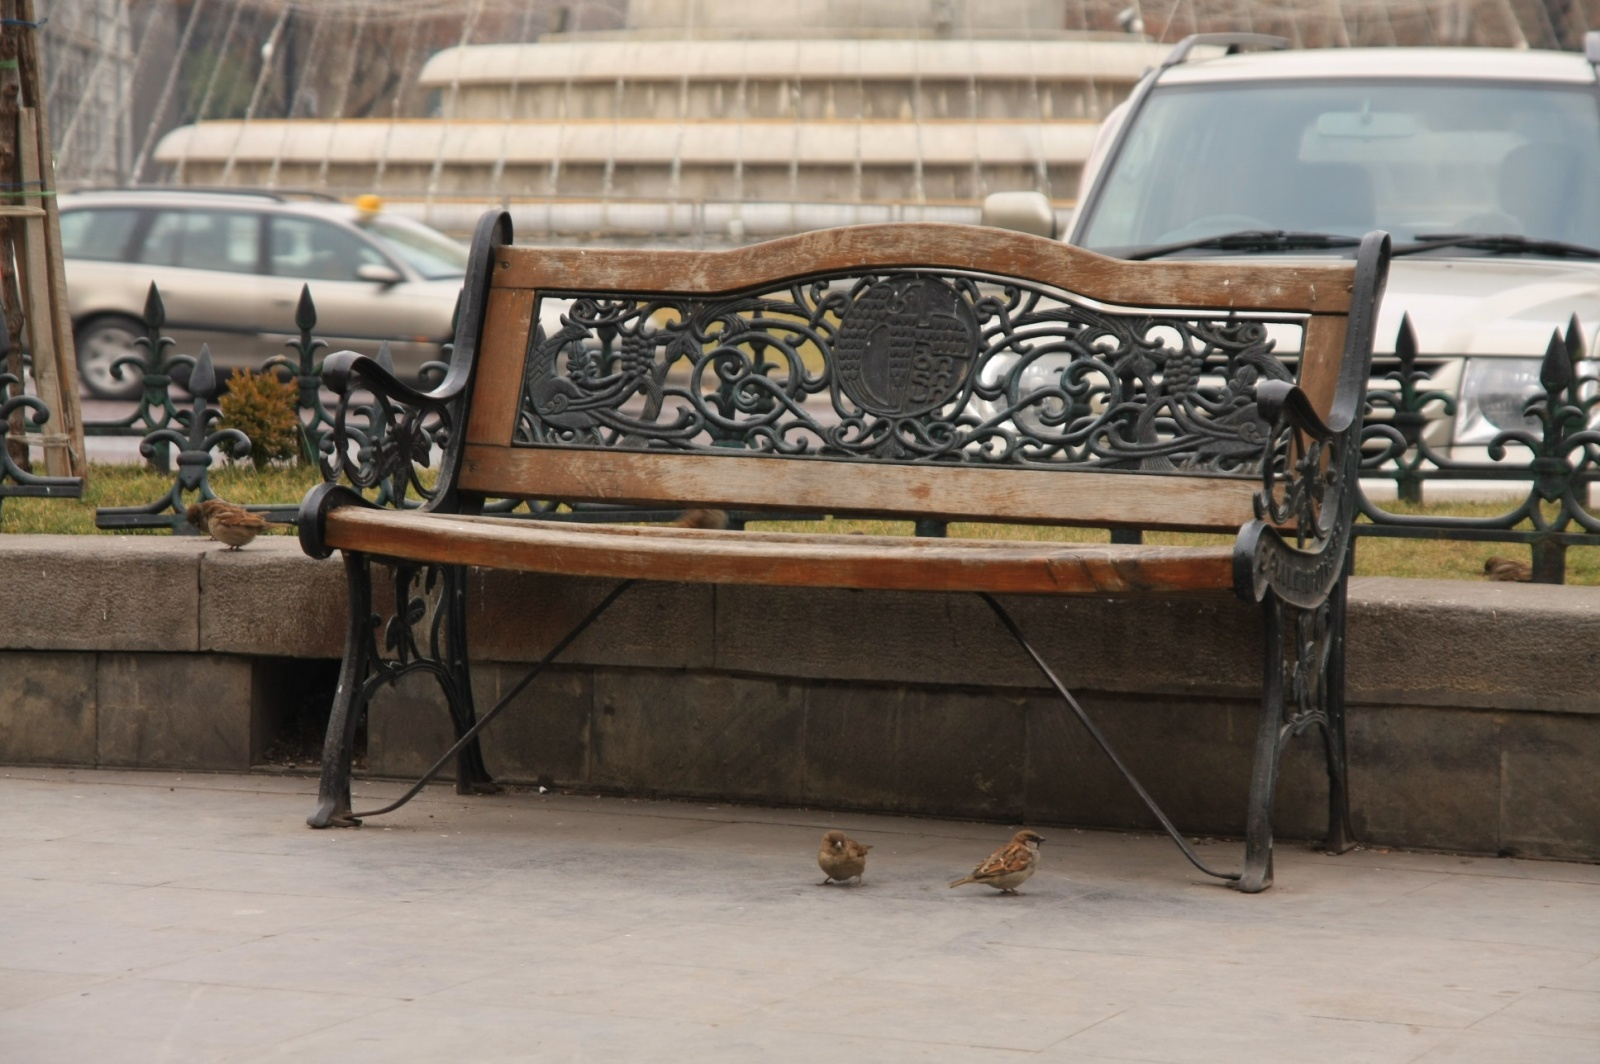 Sparrows are the same everywhere in the world